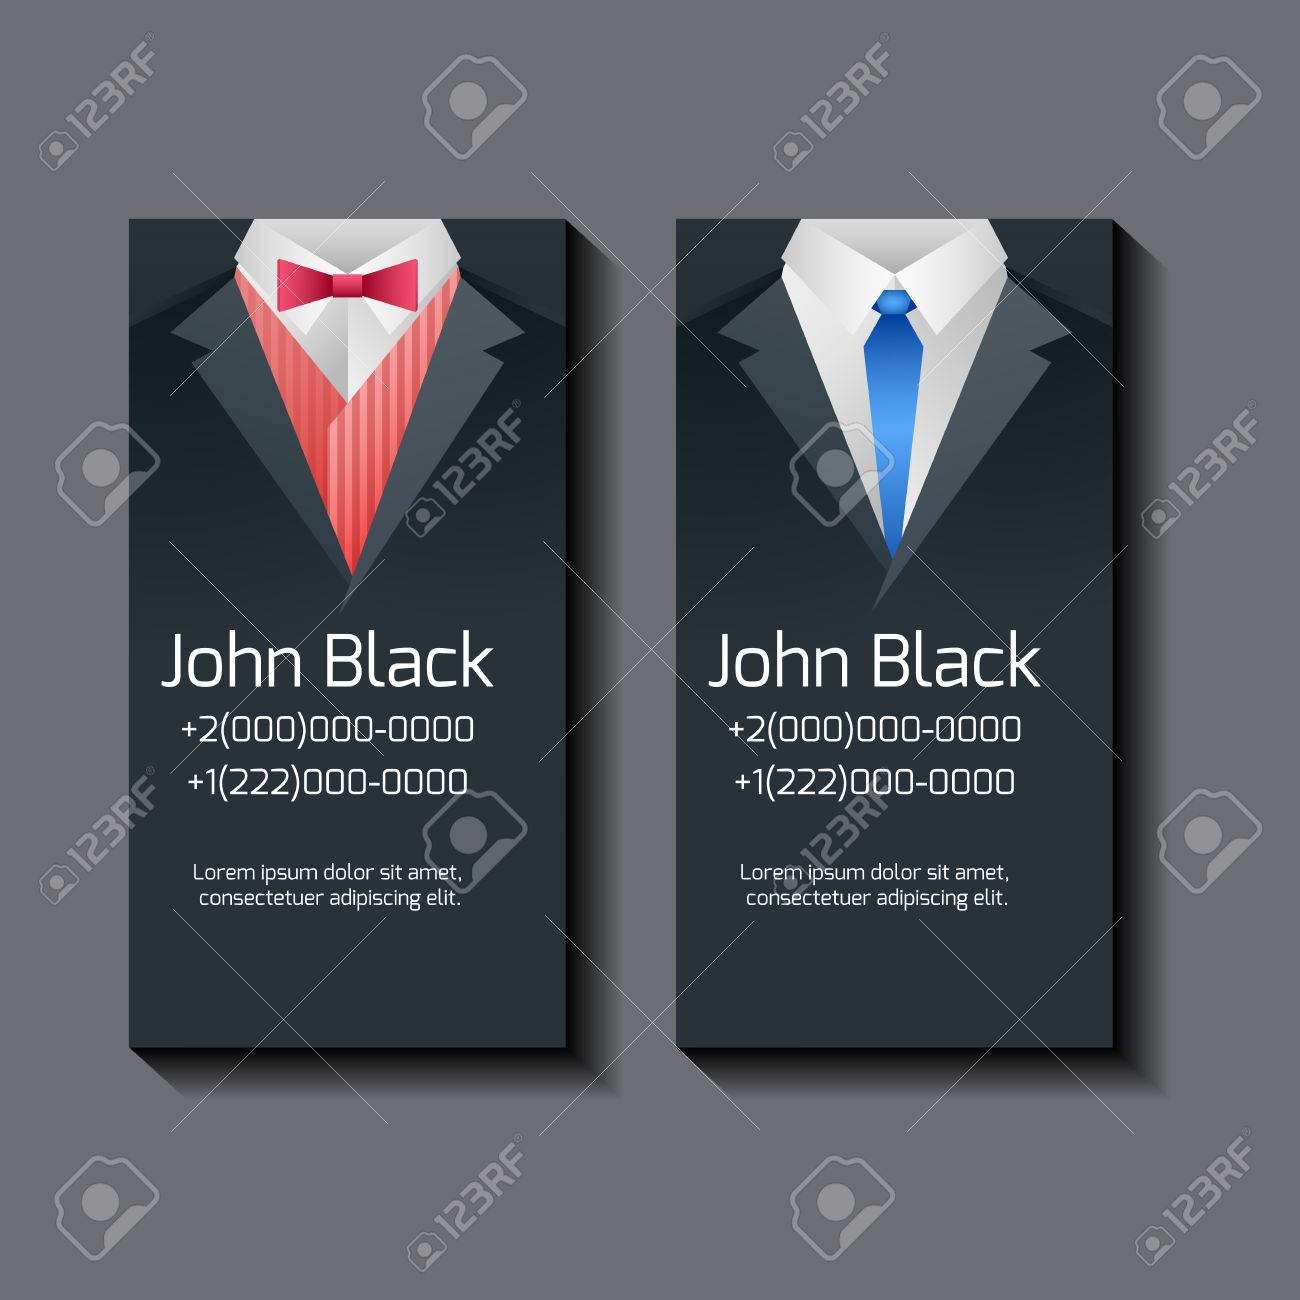 Set Of Vector Business Card Templates With Men\'s Suits And Place ...